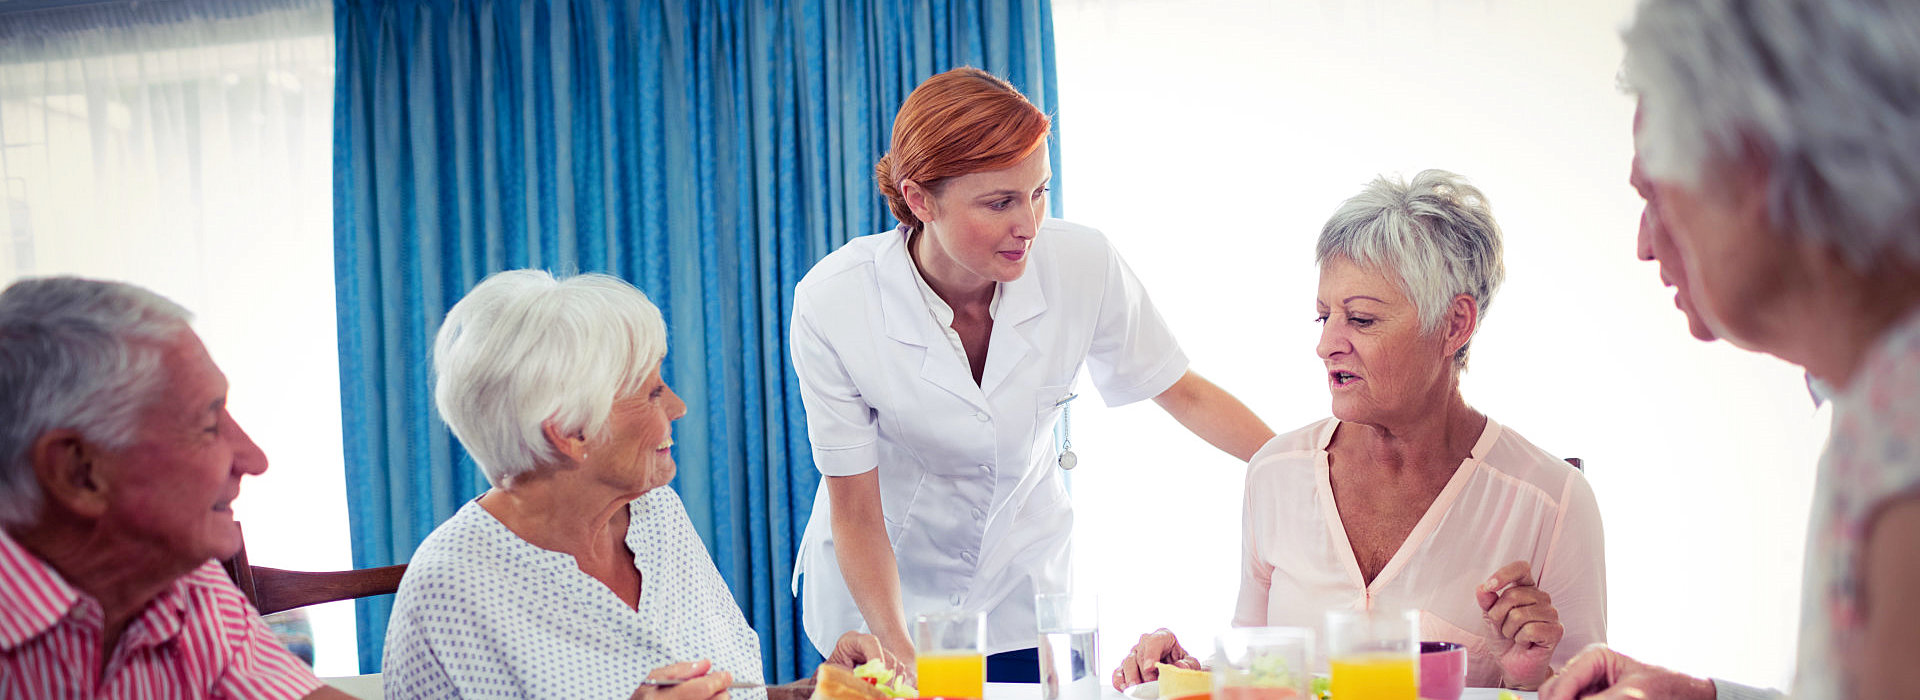 nurse and elderly group talking